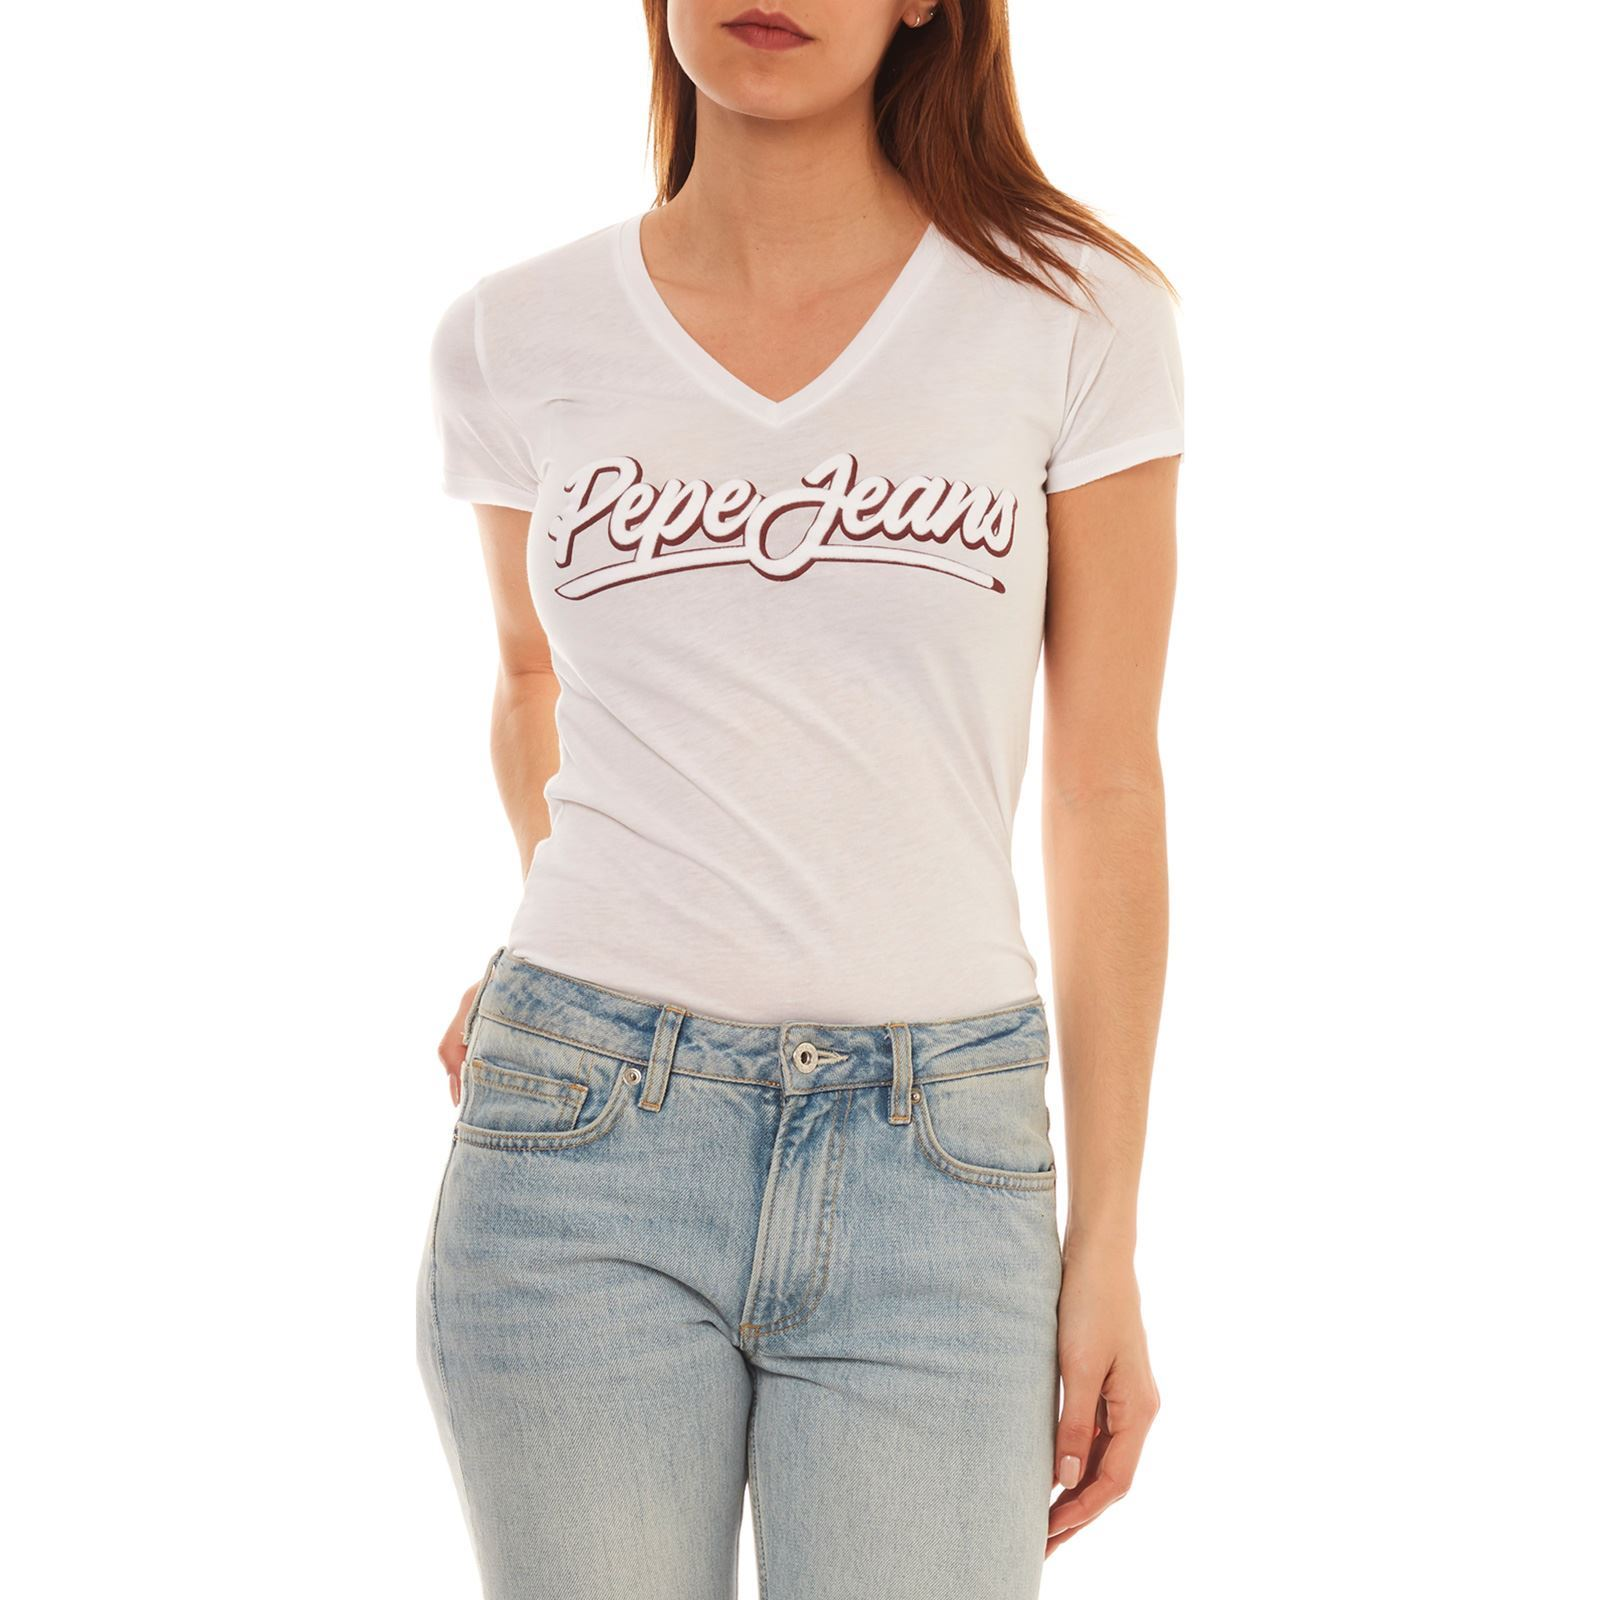 Femme LizT Courtes Jeans London shirt Manches Blanc V Pepe HeEDbY2W9I